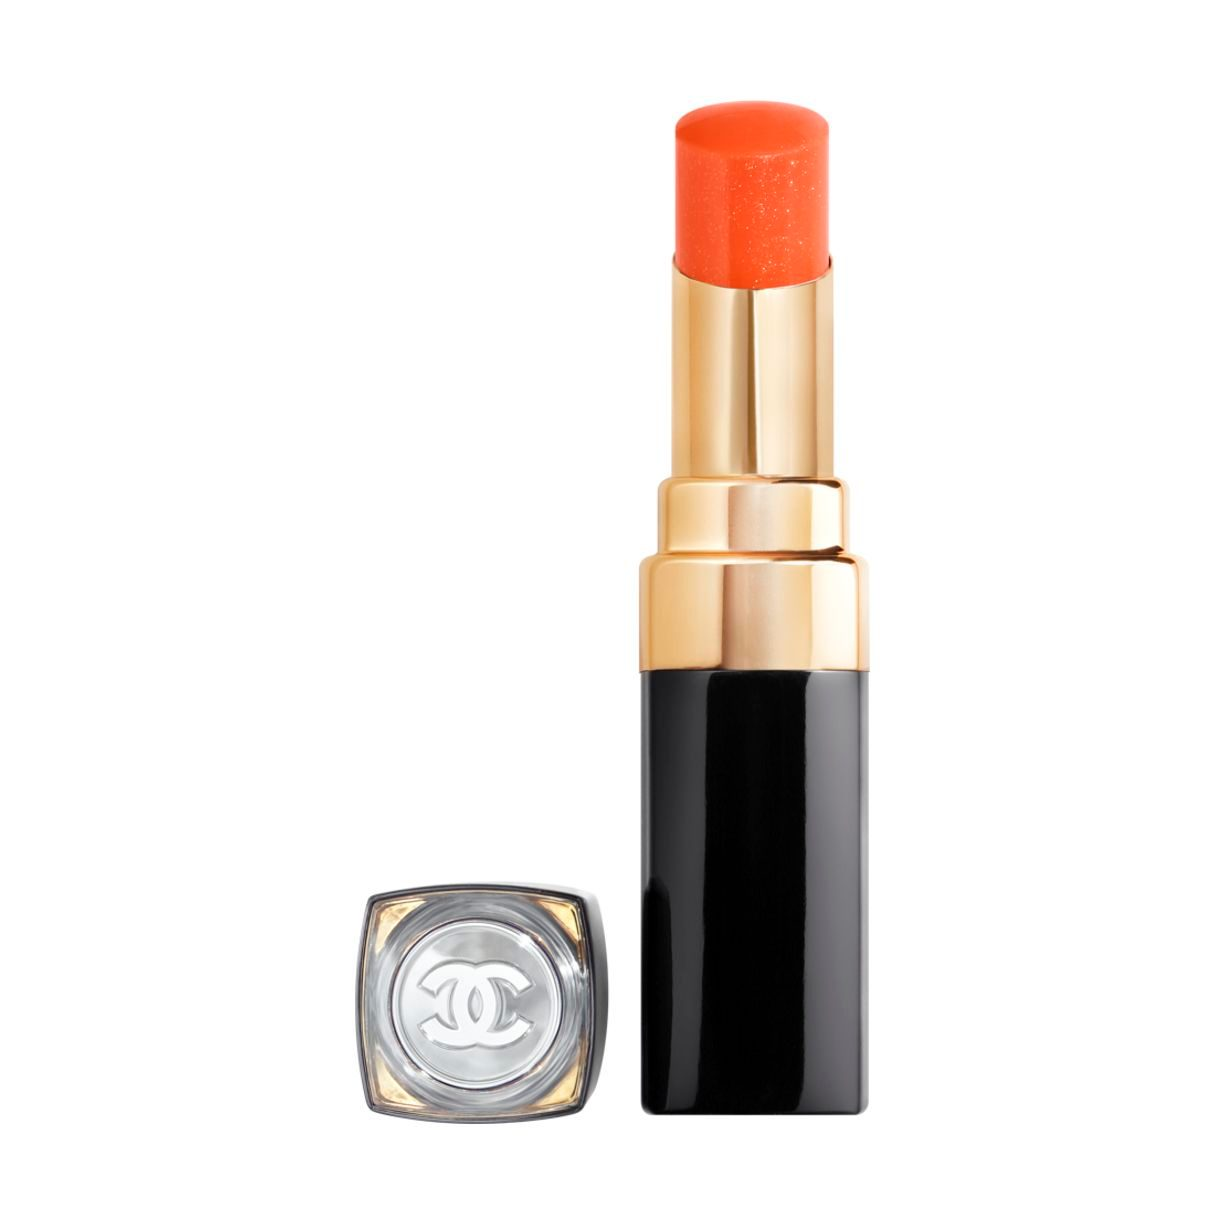 ROUGE COCO FLASH TOP COAT COLOUR, SHINE, INTENSITY IN A FLASH 202 - WARM UP